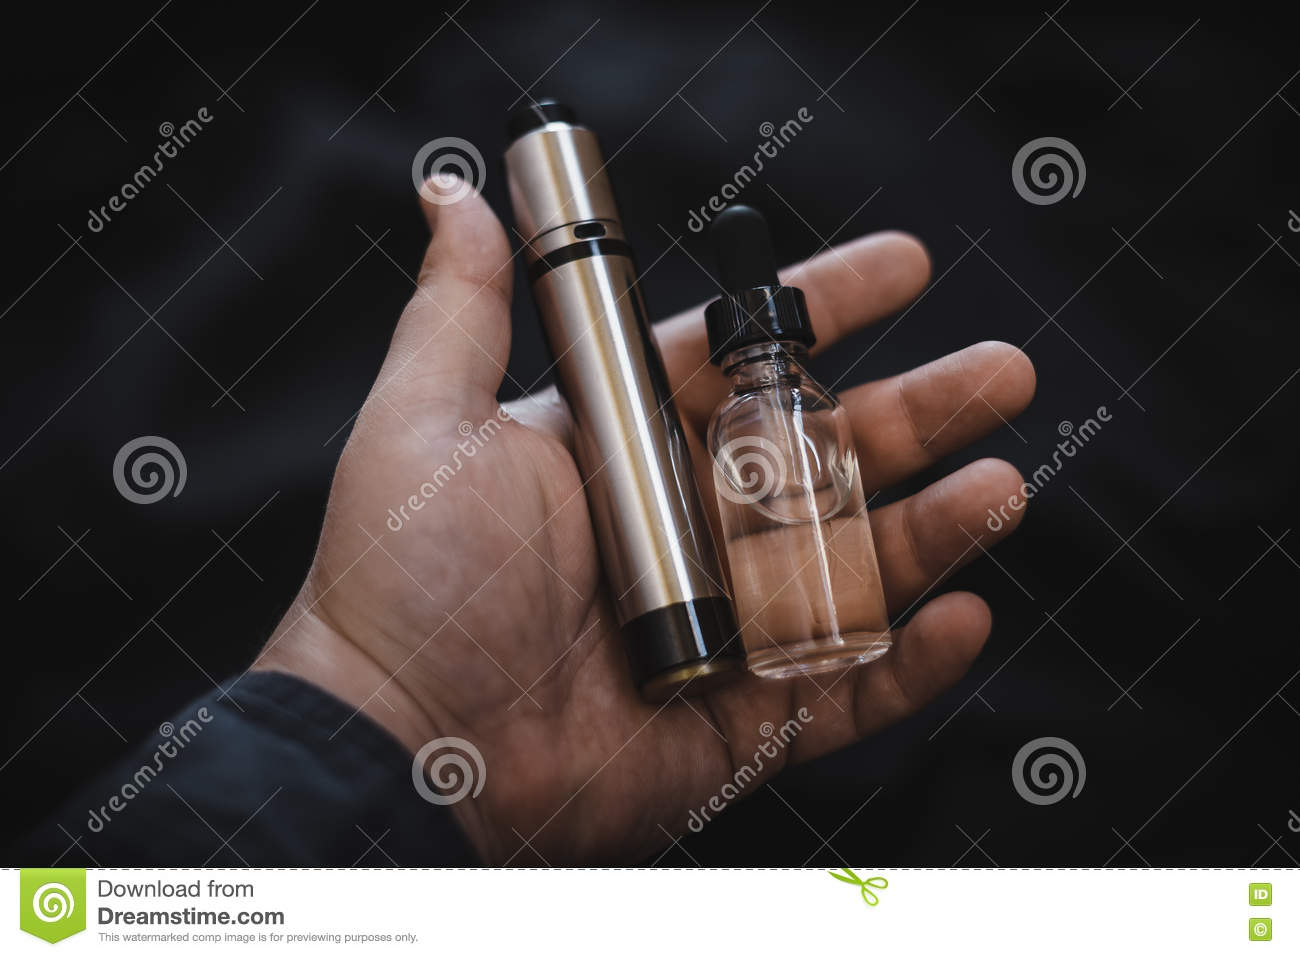 Vaping Device In In The Man`s Hand  Electronic Cigarette